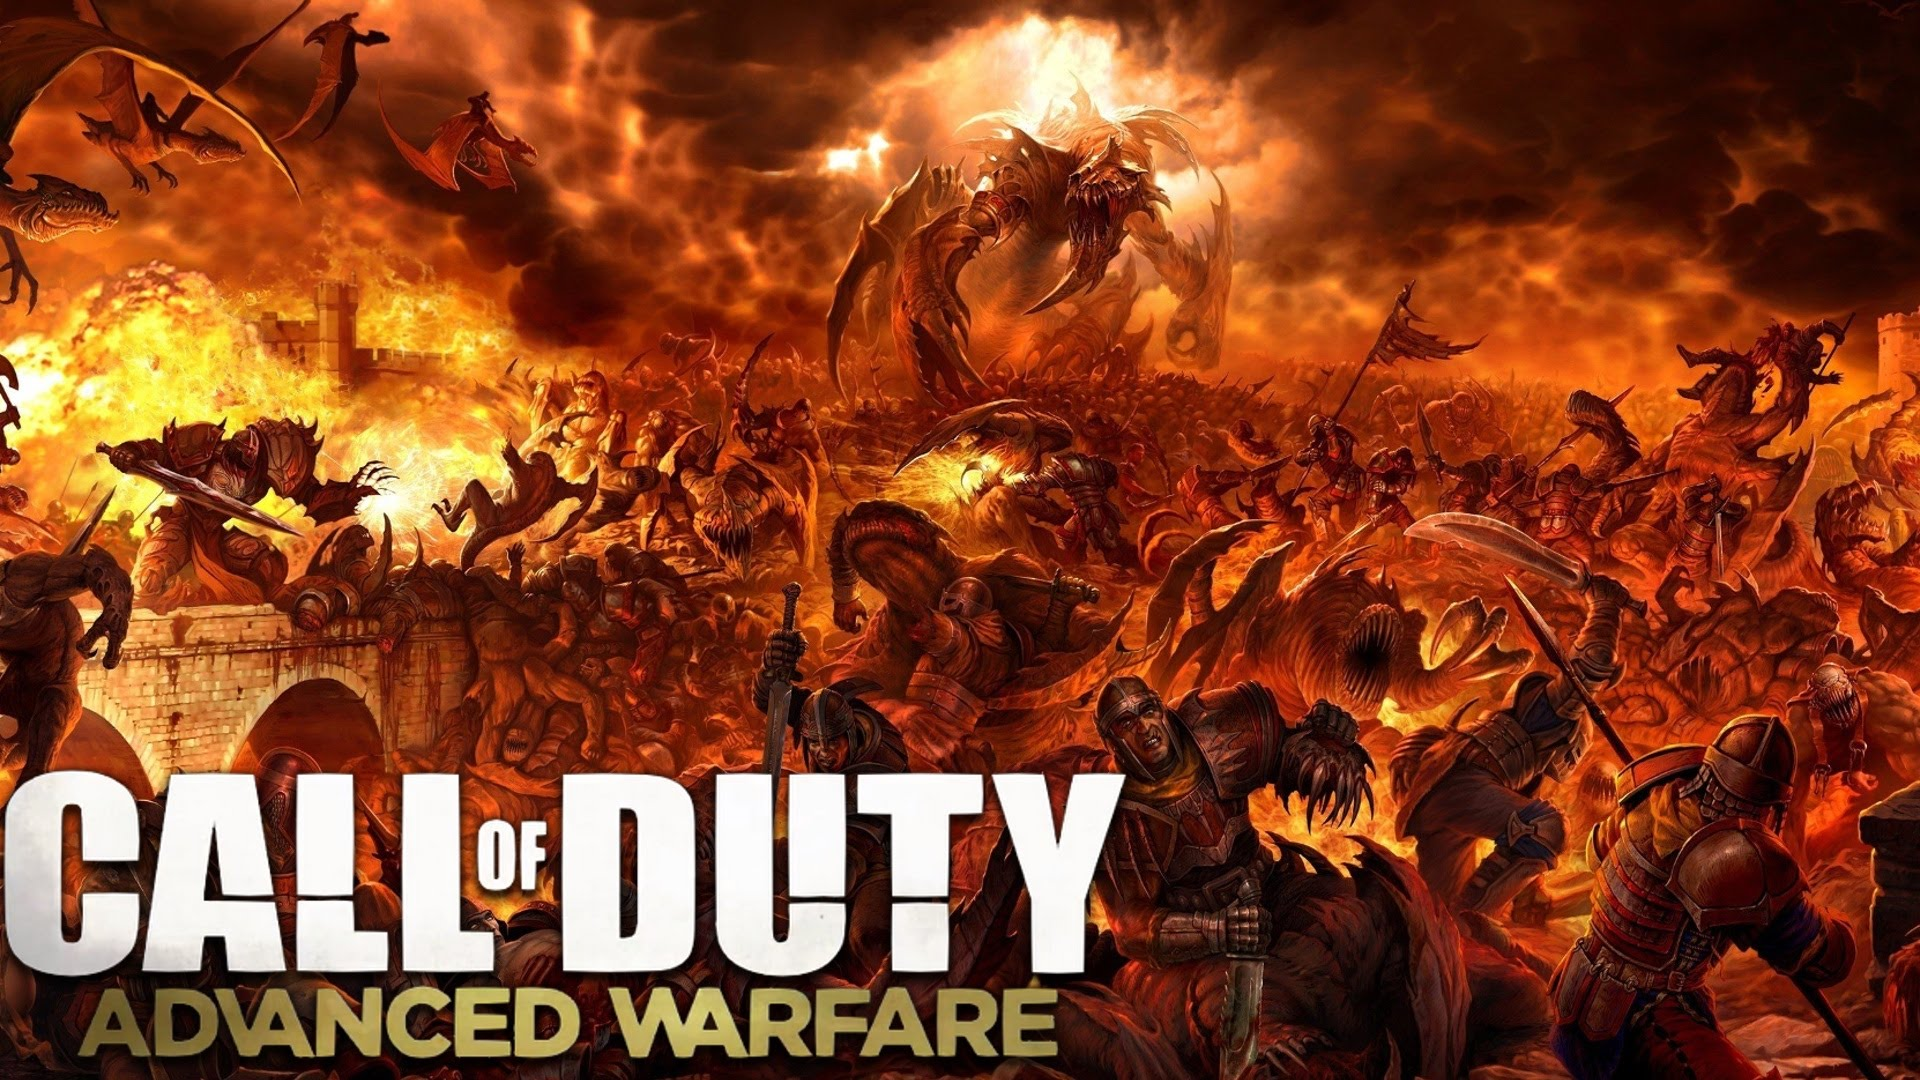 download Warfare HELLSPAWN MODE ZOMBIE DEMONS Real or Fake 1920x1080